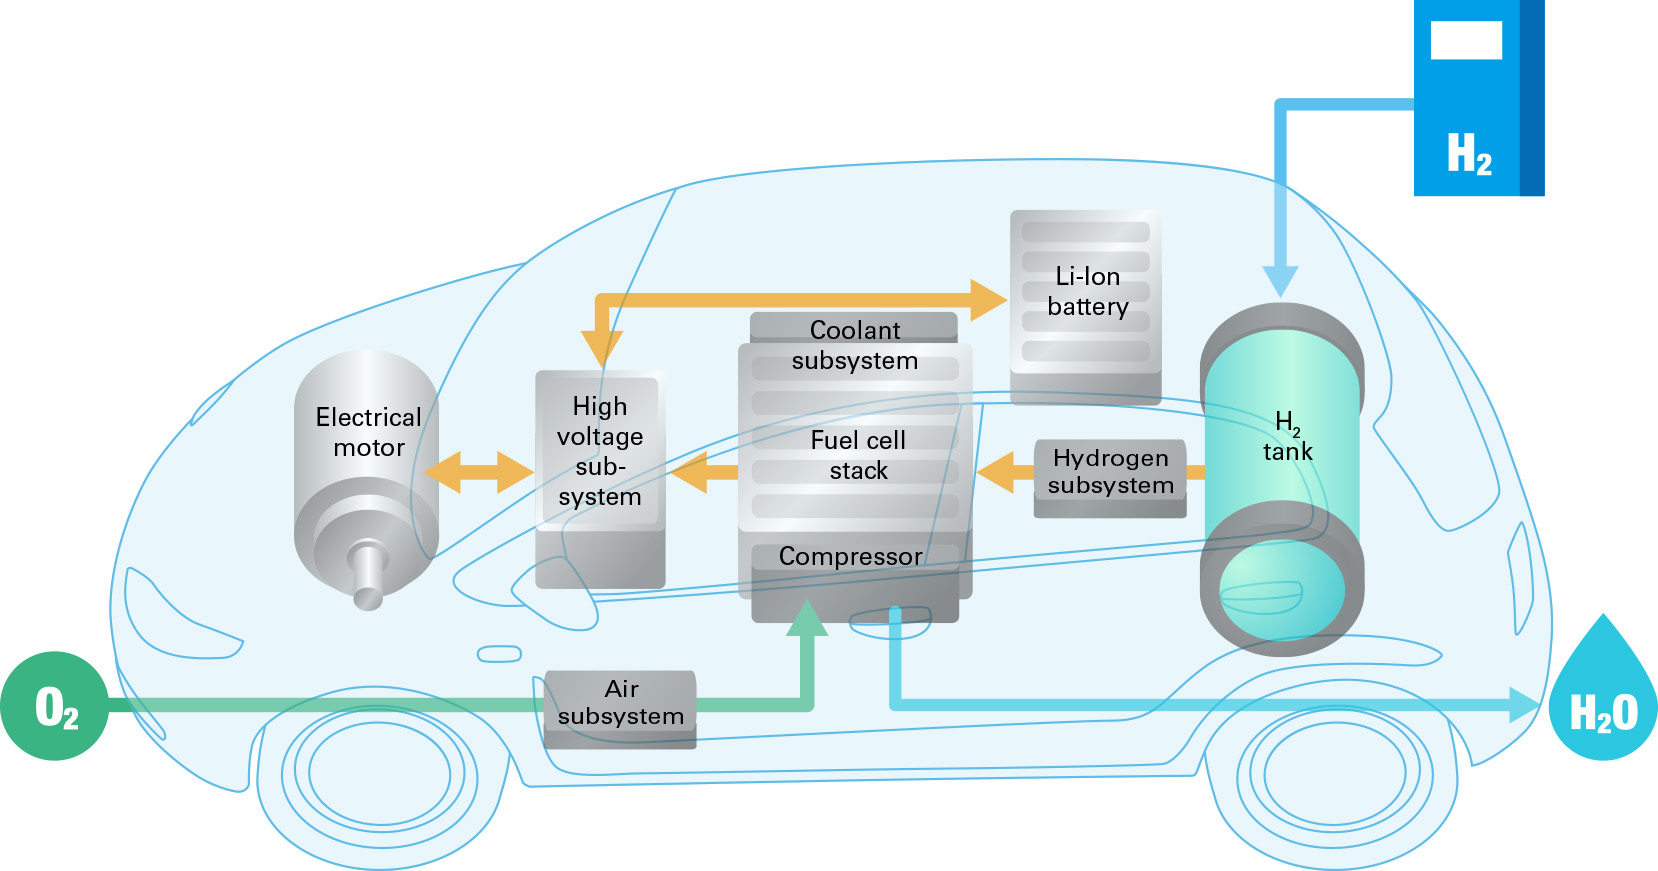 Major components in a fuel cell electric vehicle